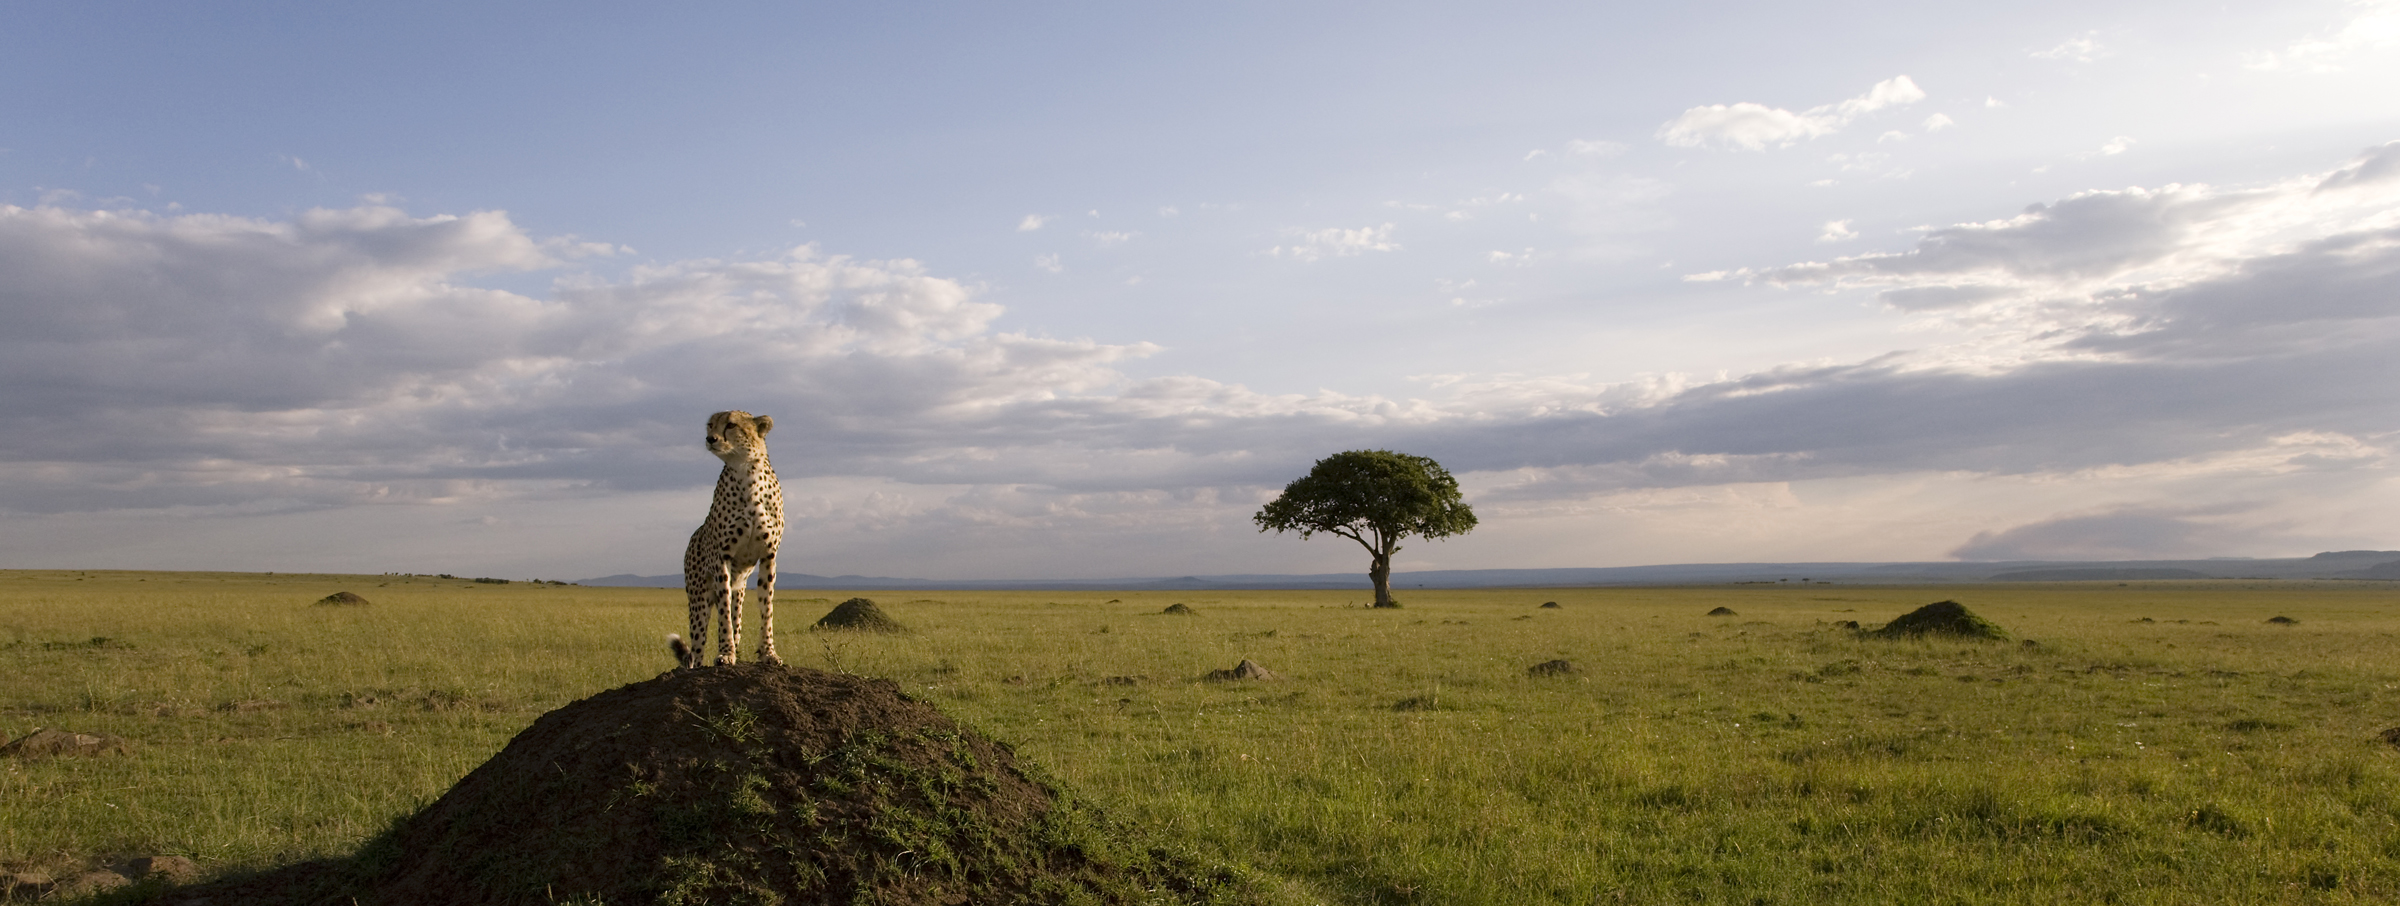 See African Cats-Save The Savanna!